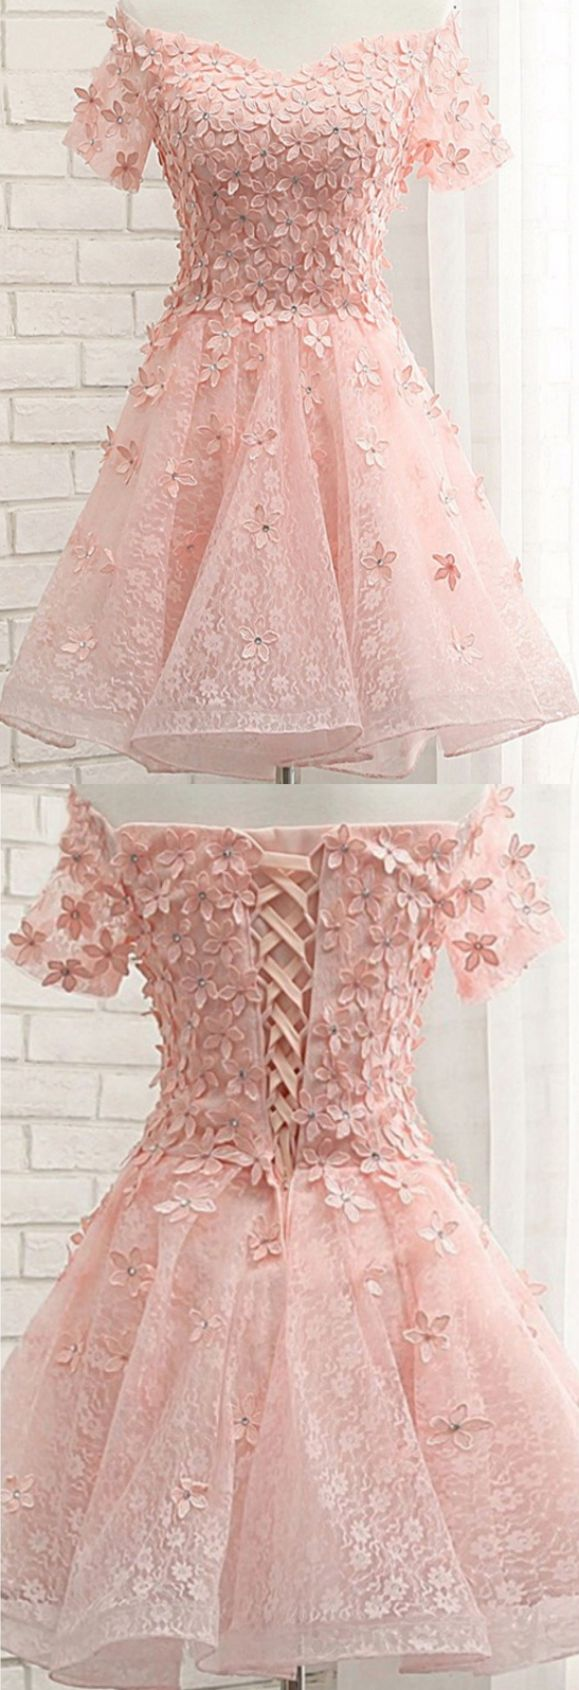 Short Homecoming Dresses, A-line Homecoming Dresses, Pink Homecoming Dresses, Short Sleeve Homecoming Dresses, Cheap Homecoming Dresses, Homecoming Dresses Cheap, Short Homecoming Dresses, Short Sleeve Dresses, Cheap Short Homecoming Dresses, Cheap Bandage Dresses, Pink Bandage dresses, Homecoming Dresses Short, Cheap Pink Dresses, Short Pink dresses, Short Homecoming Dresses Cheap, Pink Short dresses, Cheap Short Dresses, Pink Mini dresses